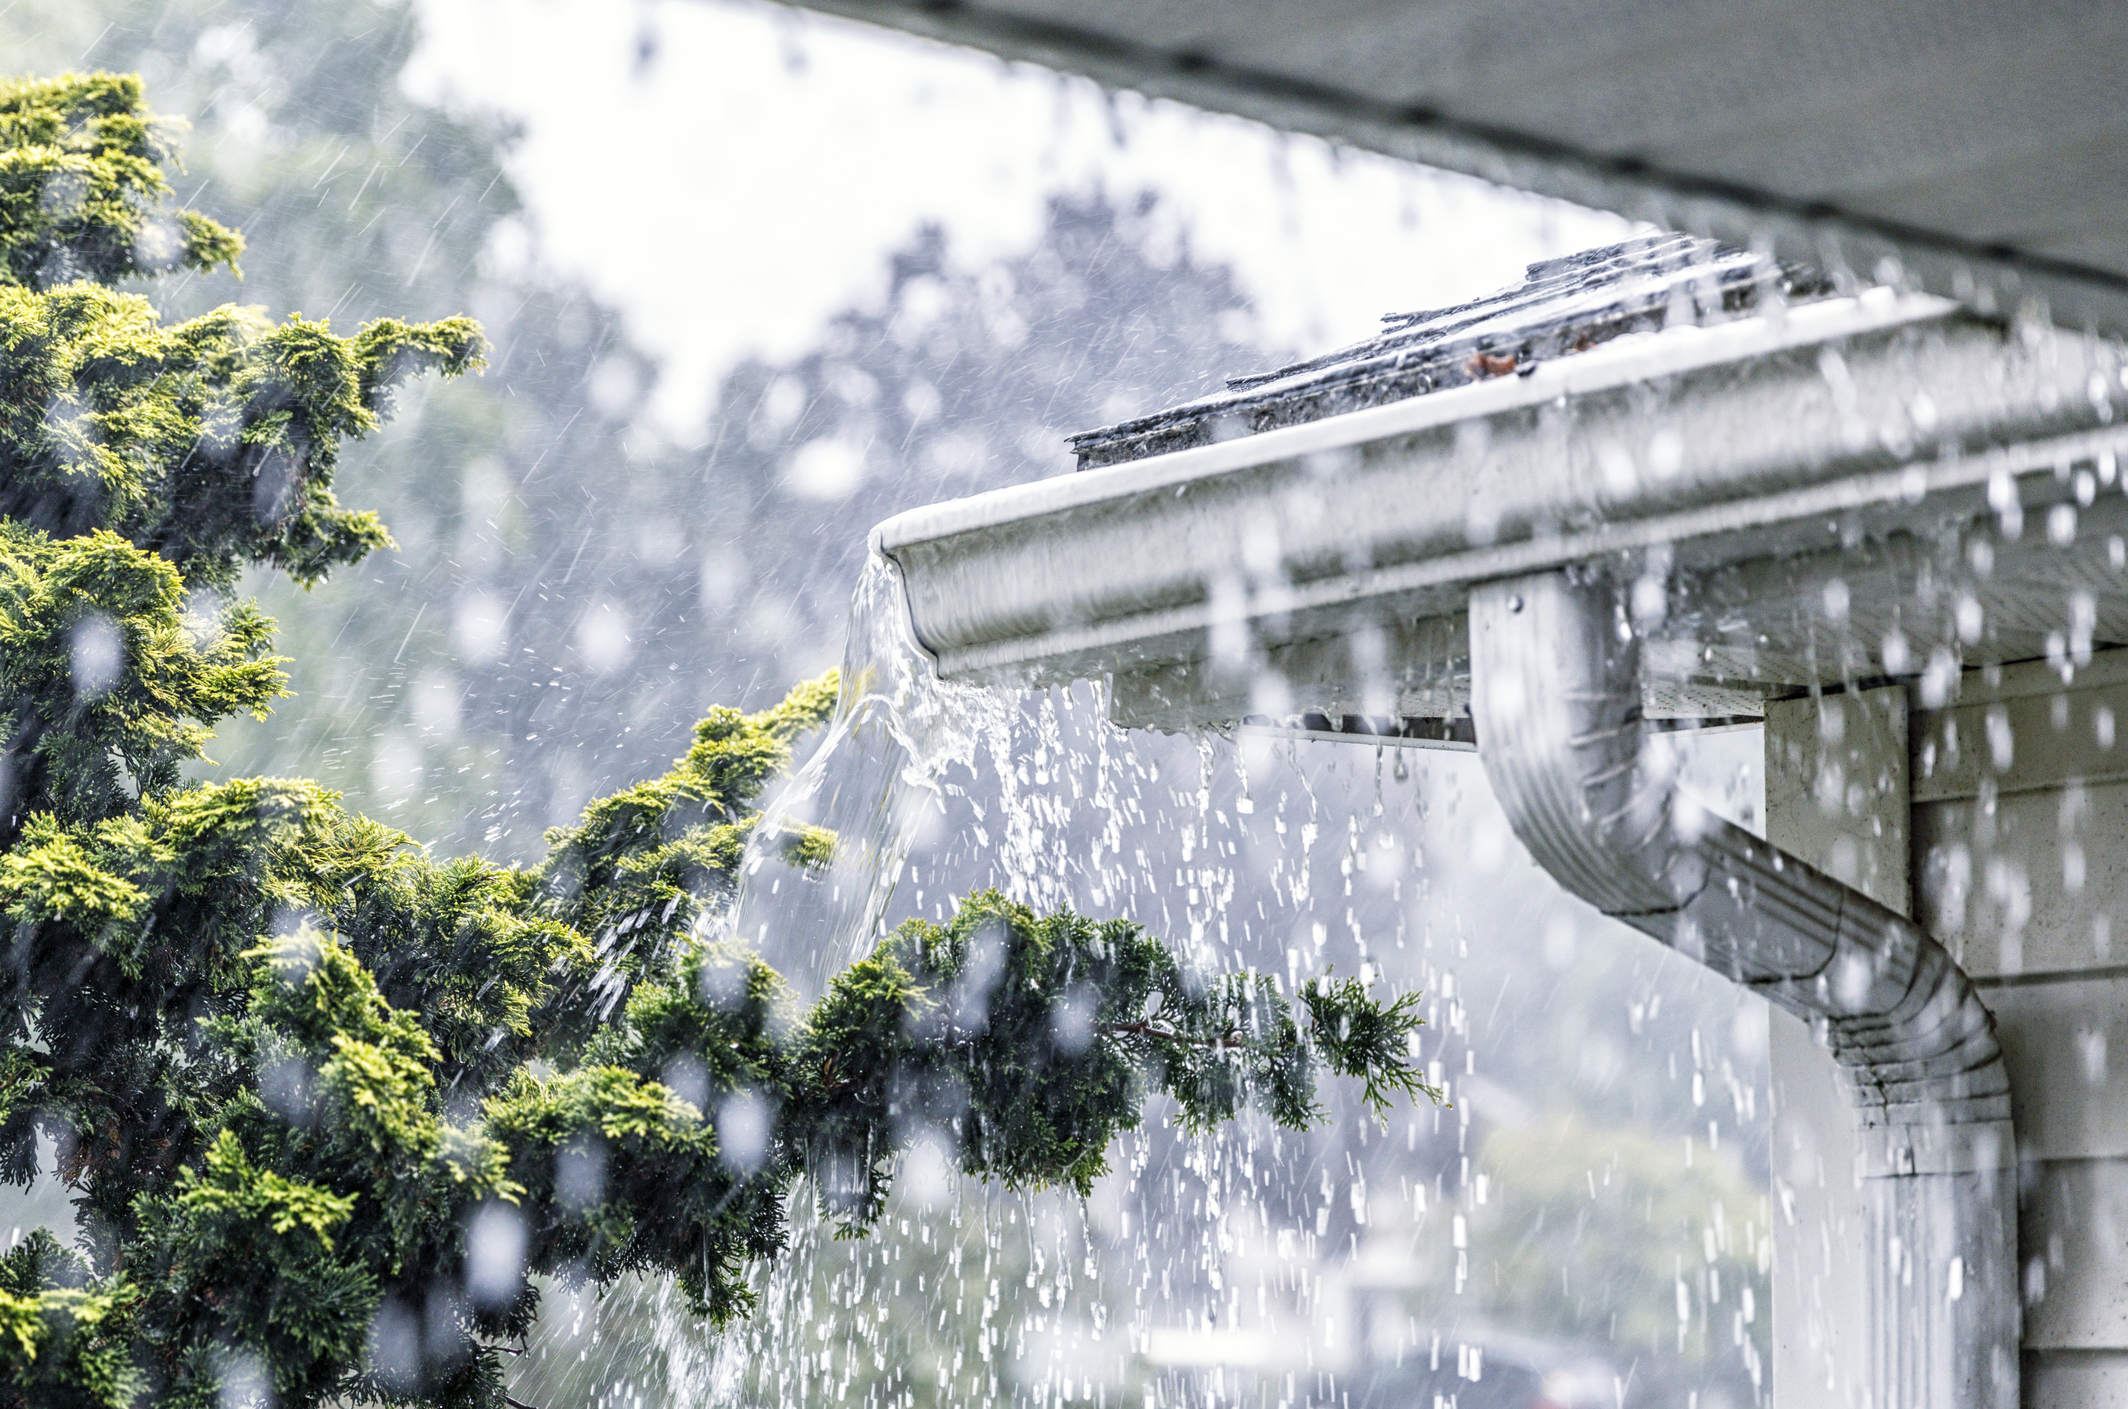 Professional Gutter Cleaning Service in Florida